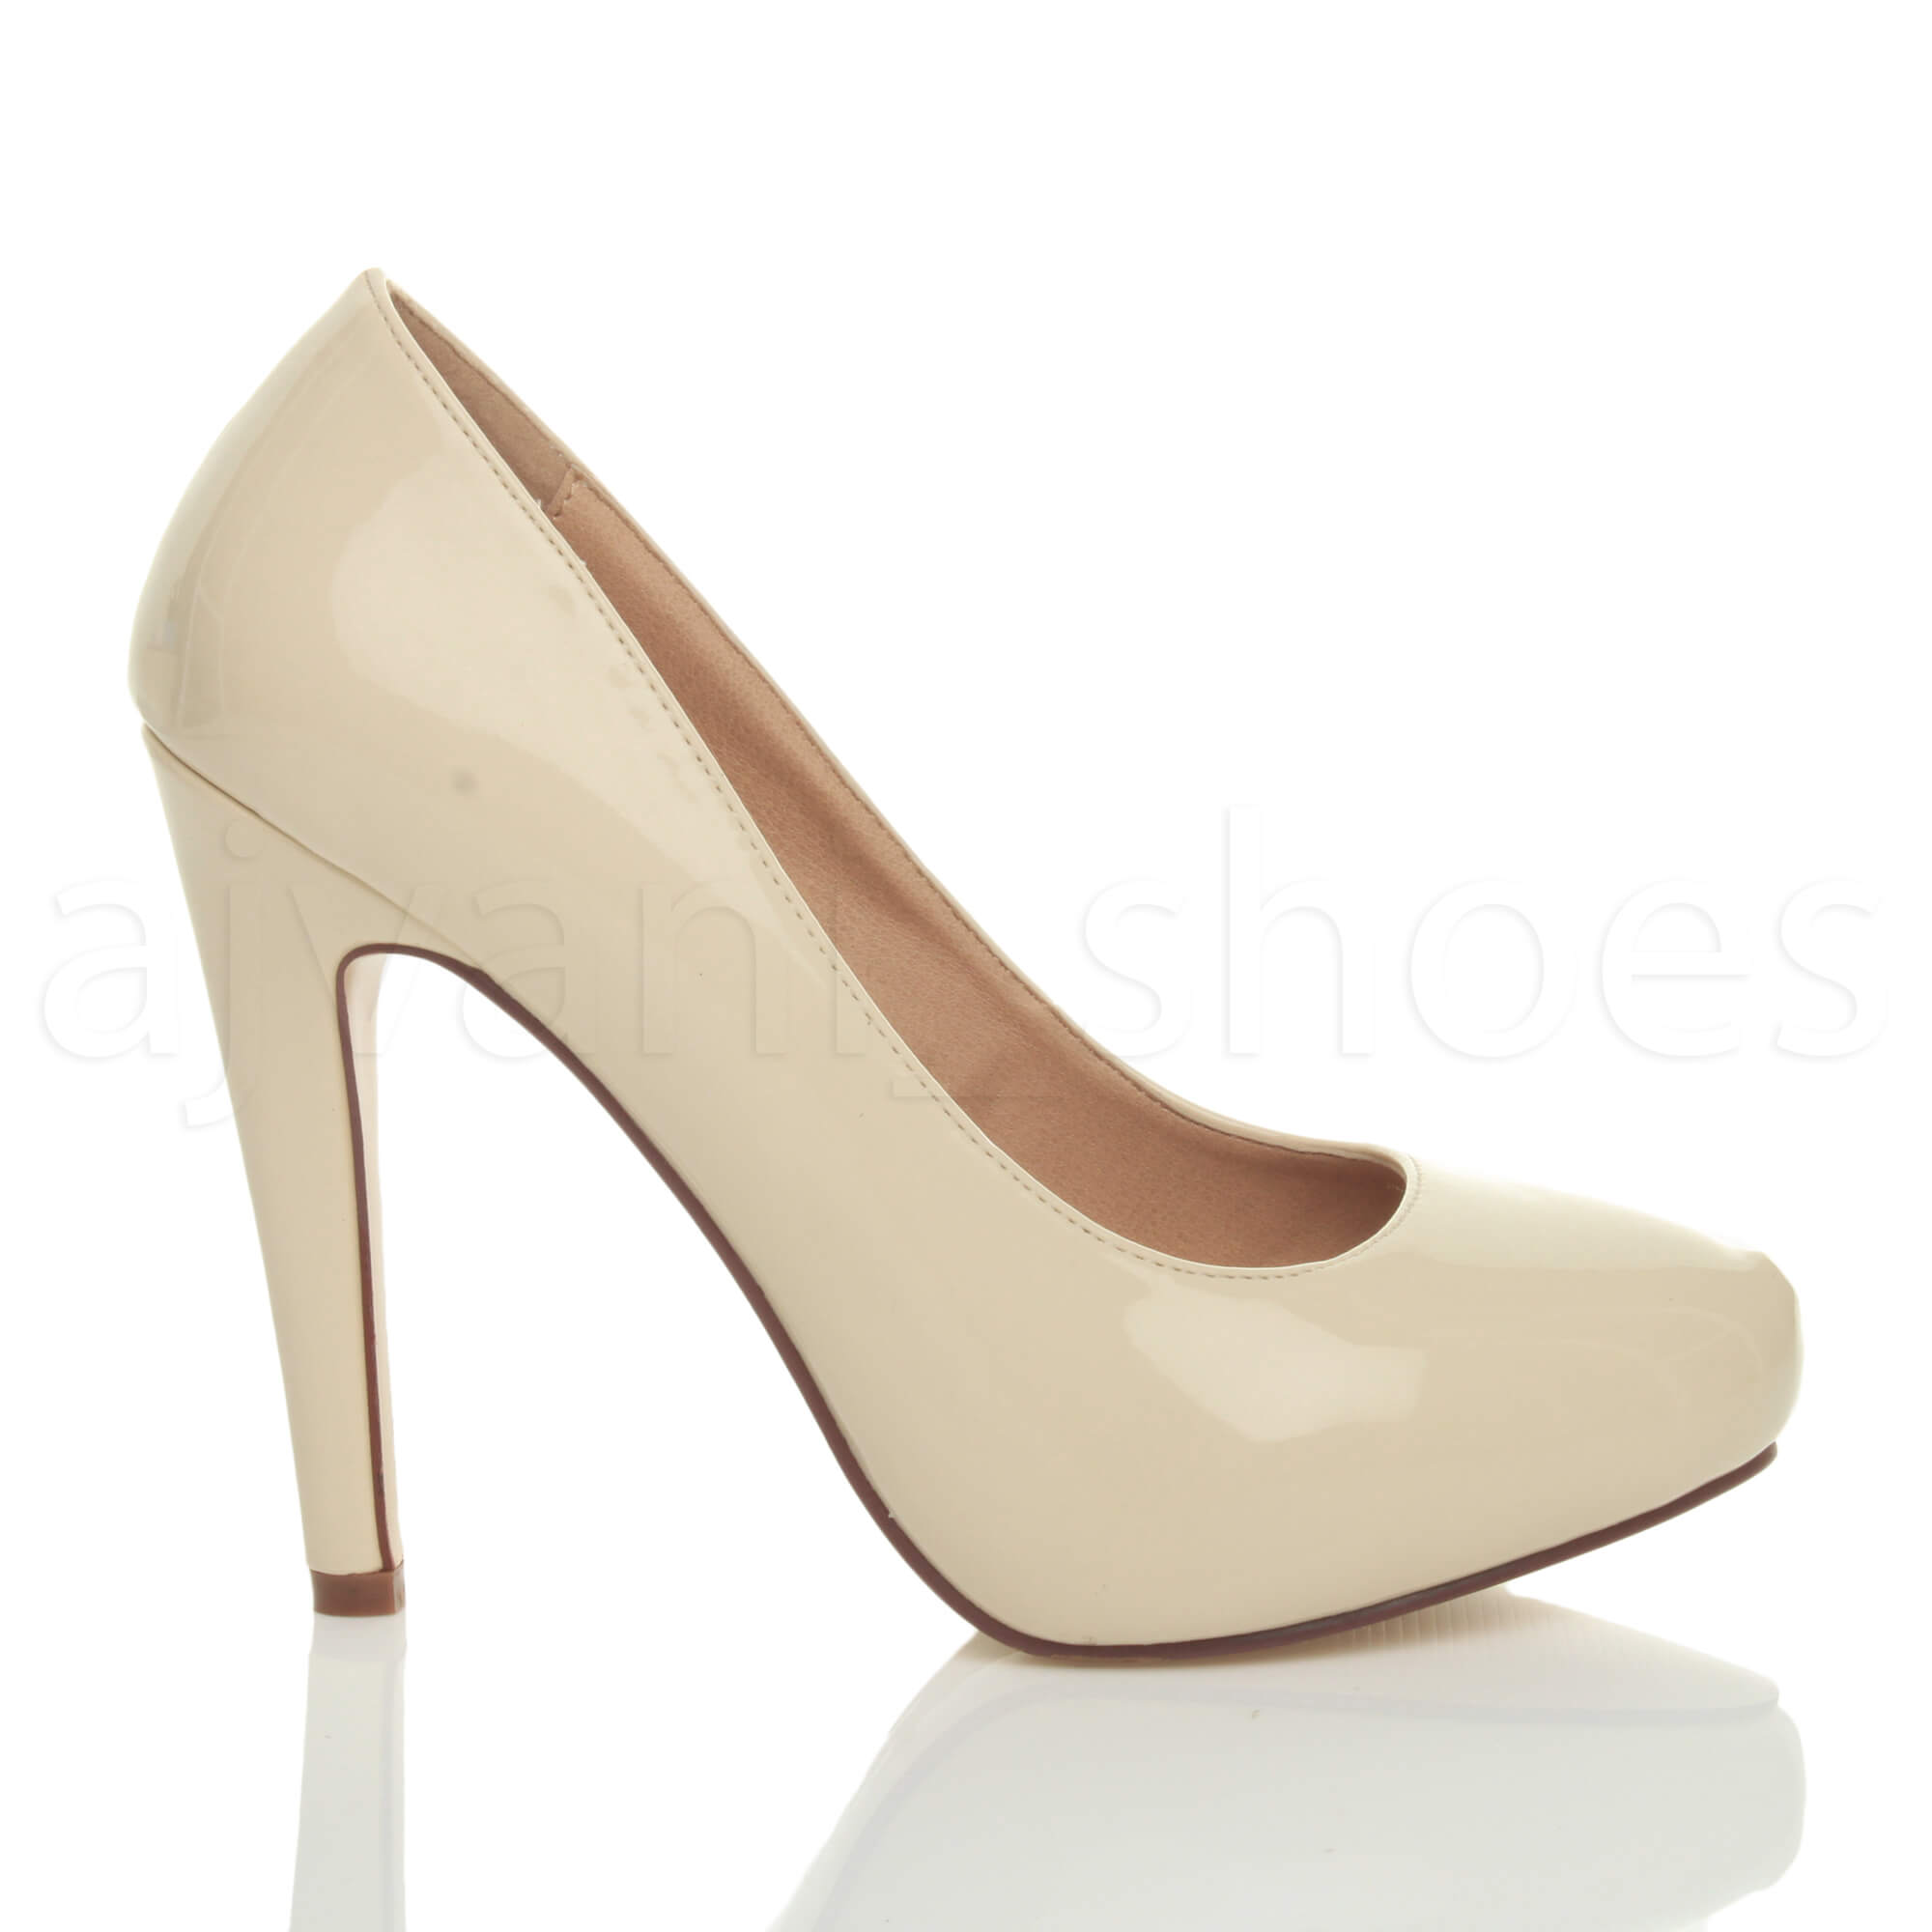 WOMENS-LADIES-HIGH-HEEL-CONCEALED-PLATFORM-COURT-SHOES-PARTY-PROM-PUMPS-SIZE thumbnail 13